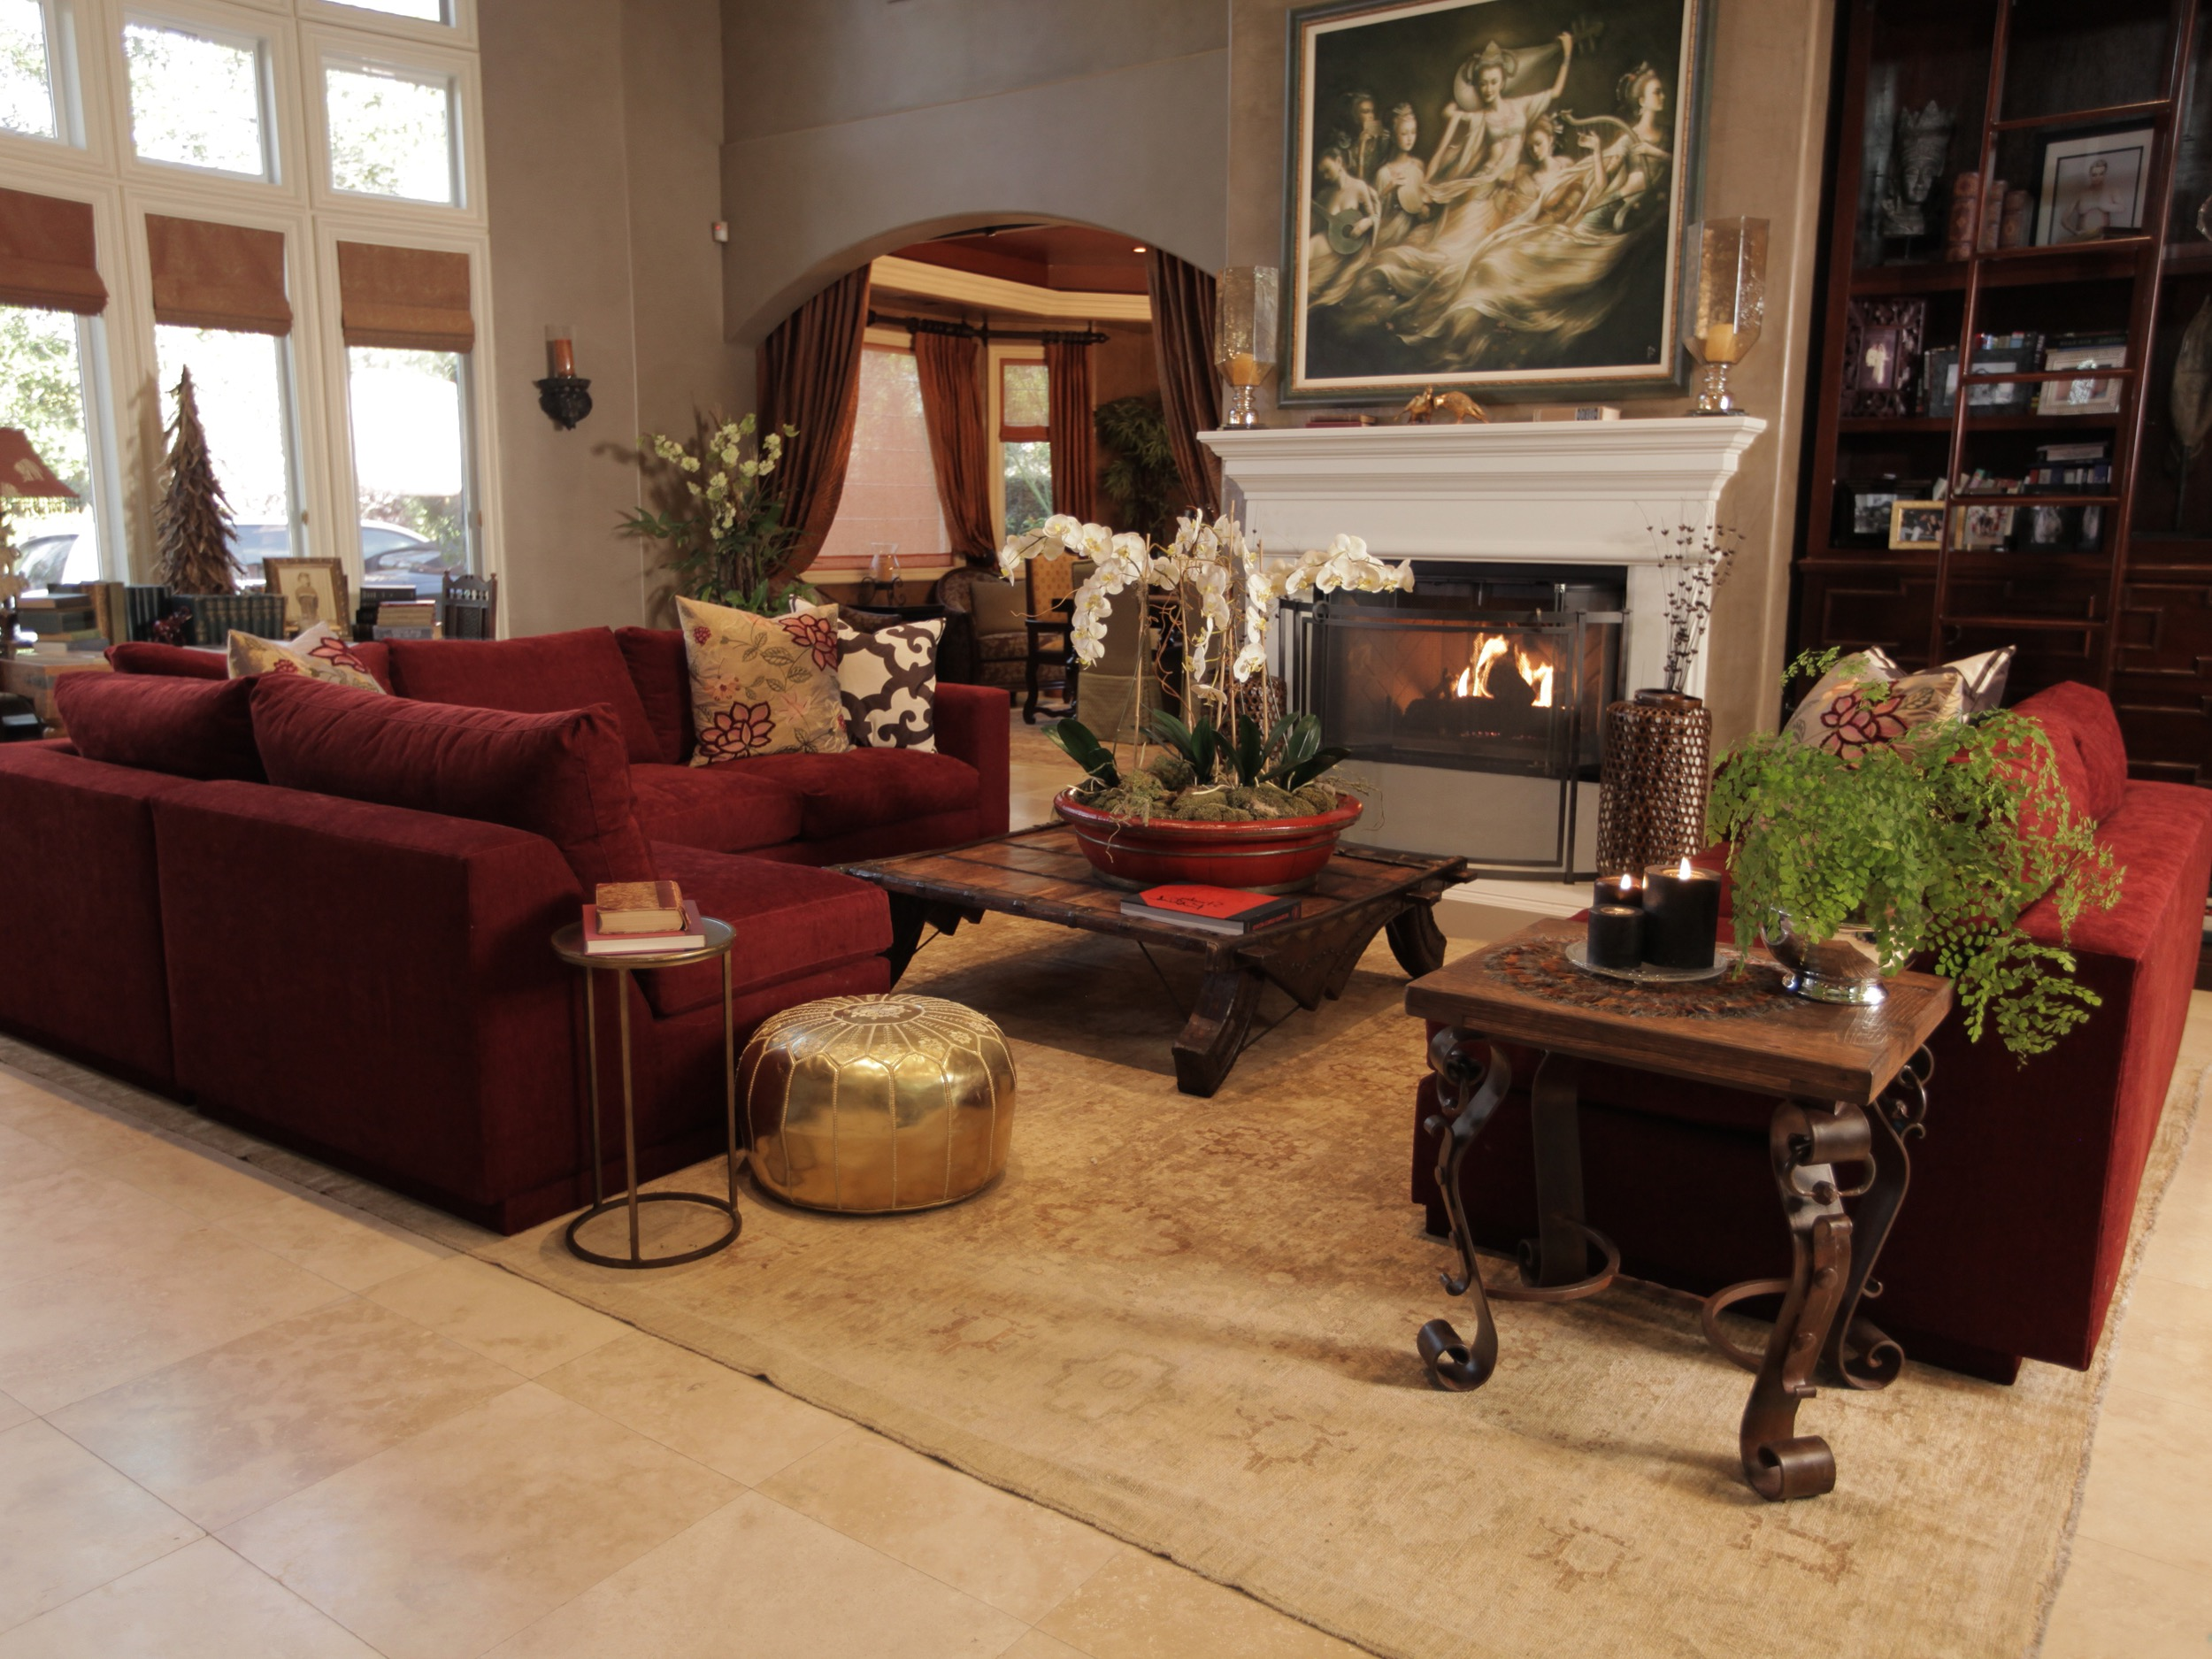 Moroccan Inspired Living Room Interior Decor (Image 14 of 25)